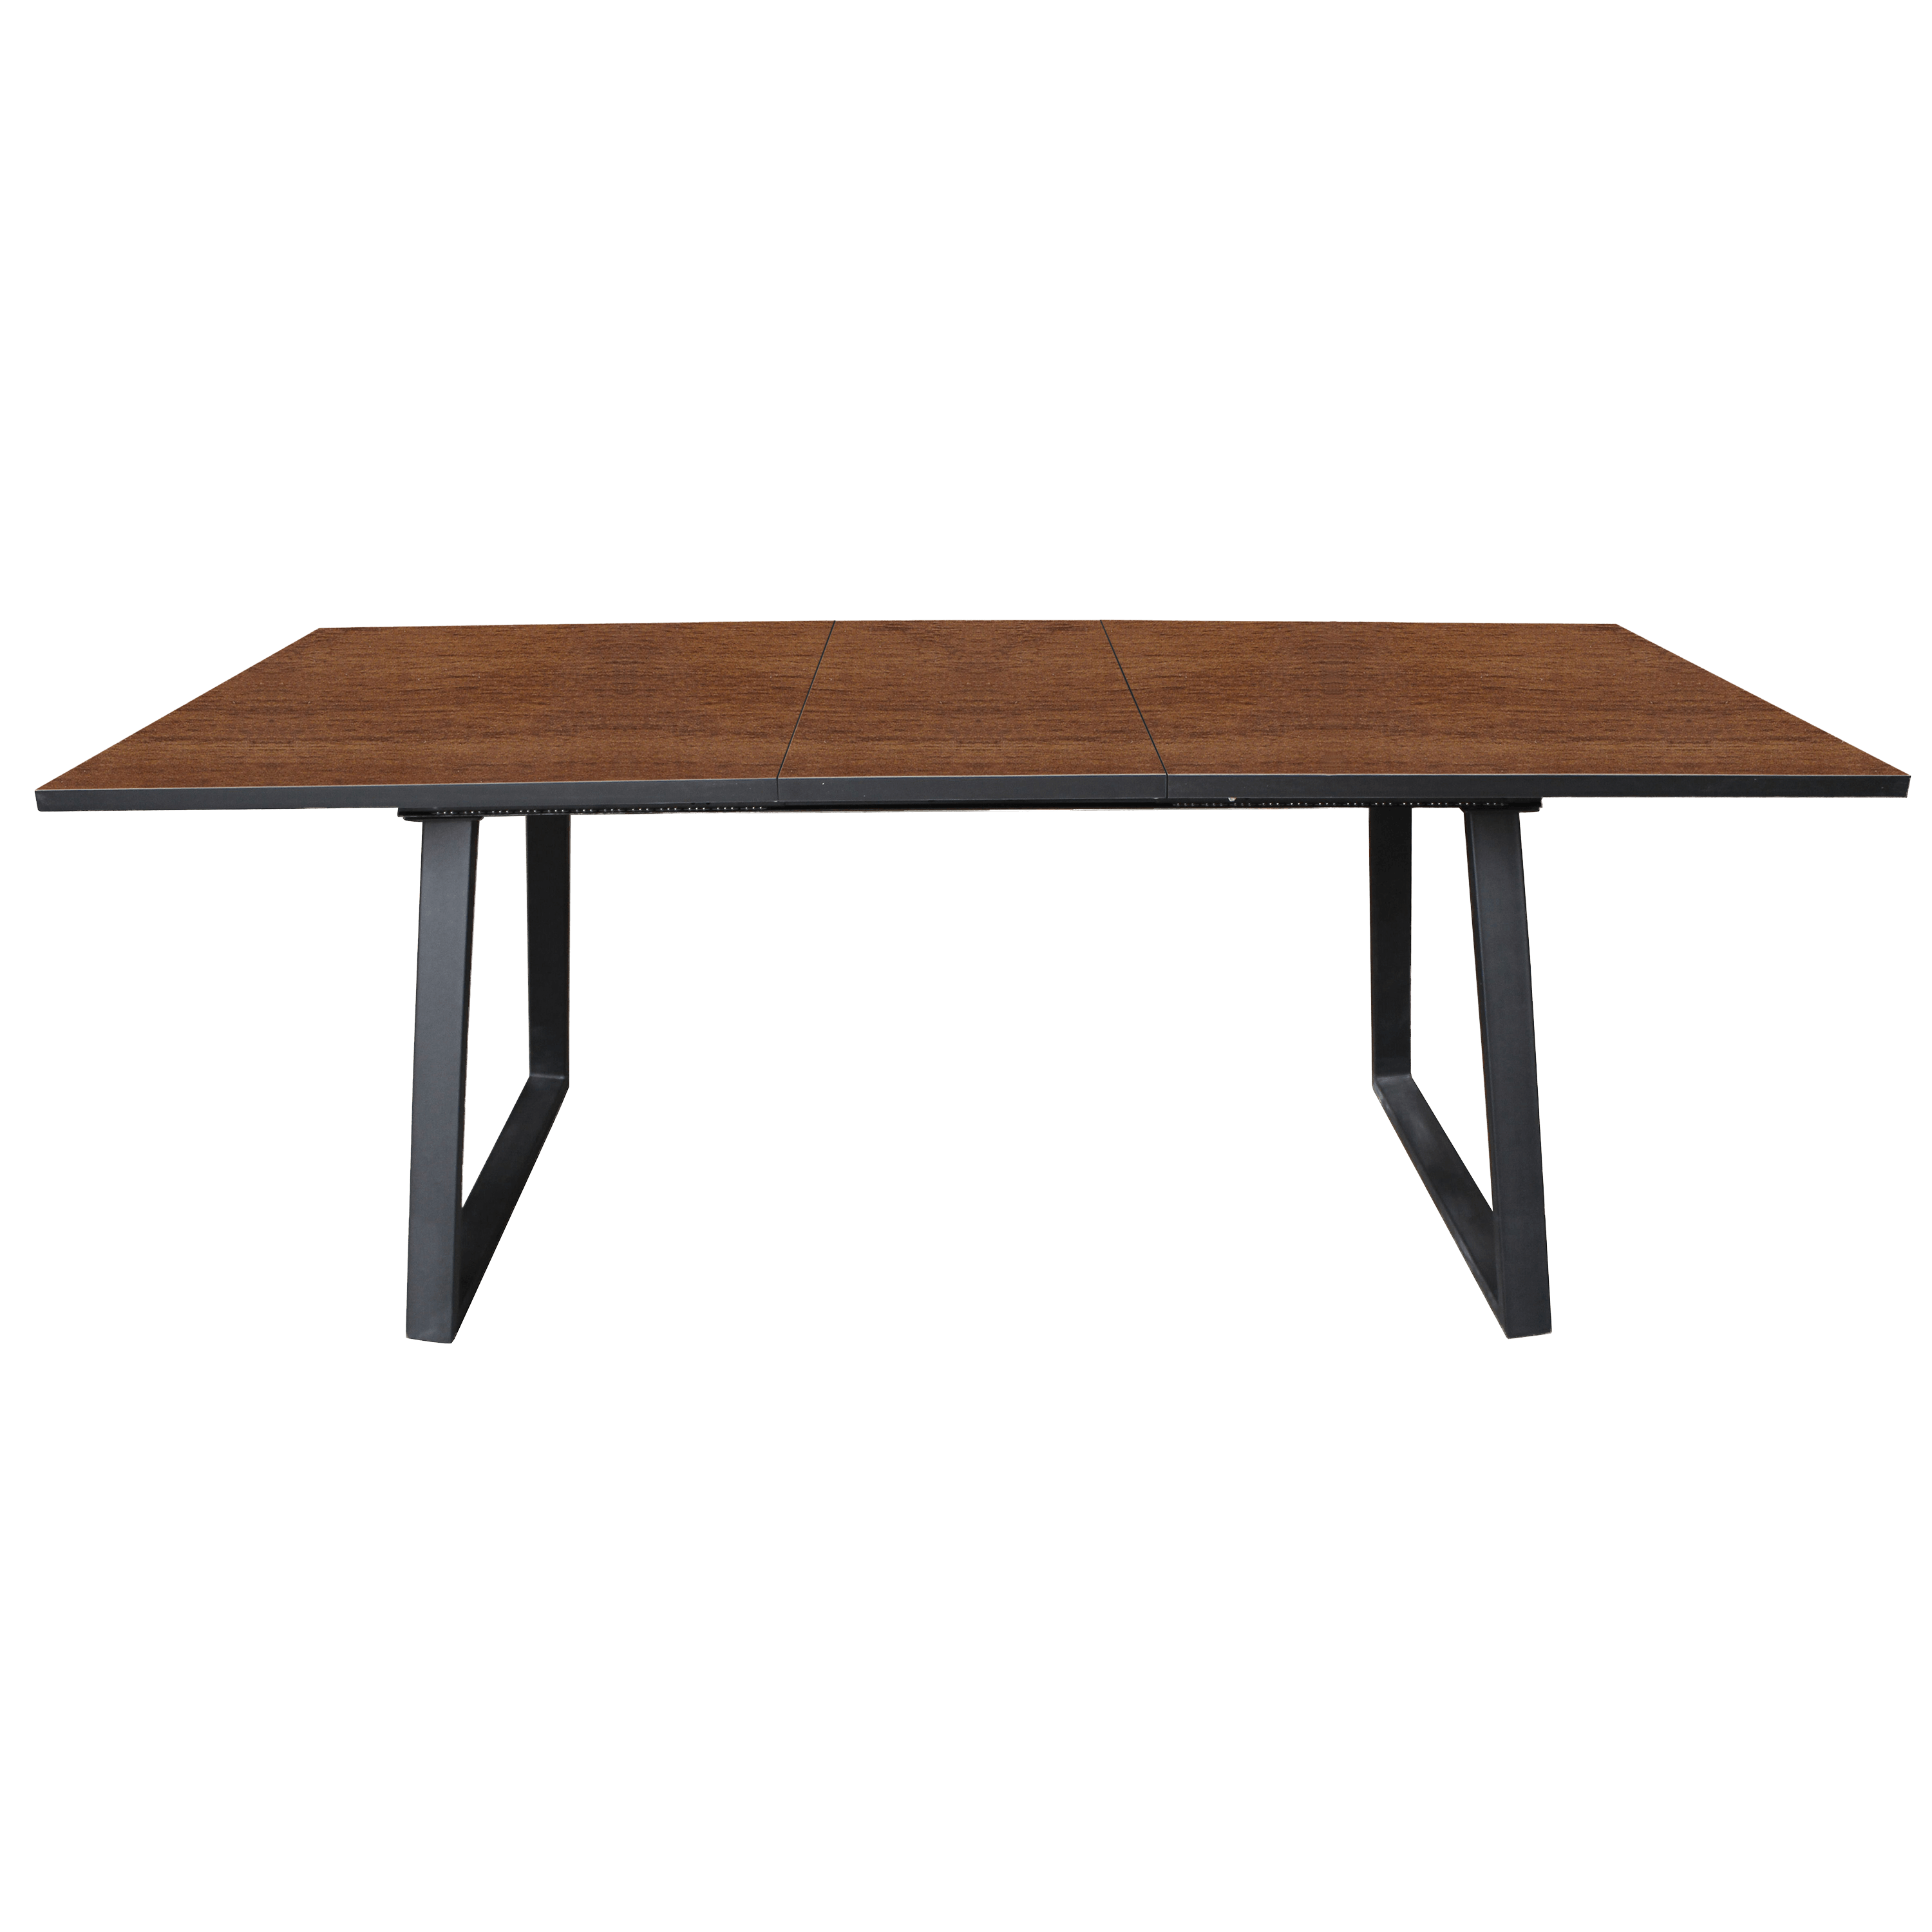 Orlando Extendable Dining Table 1 6 2m X 0 9m 499 Dining Table Dining Table Marble Dining